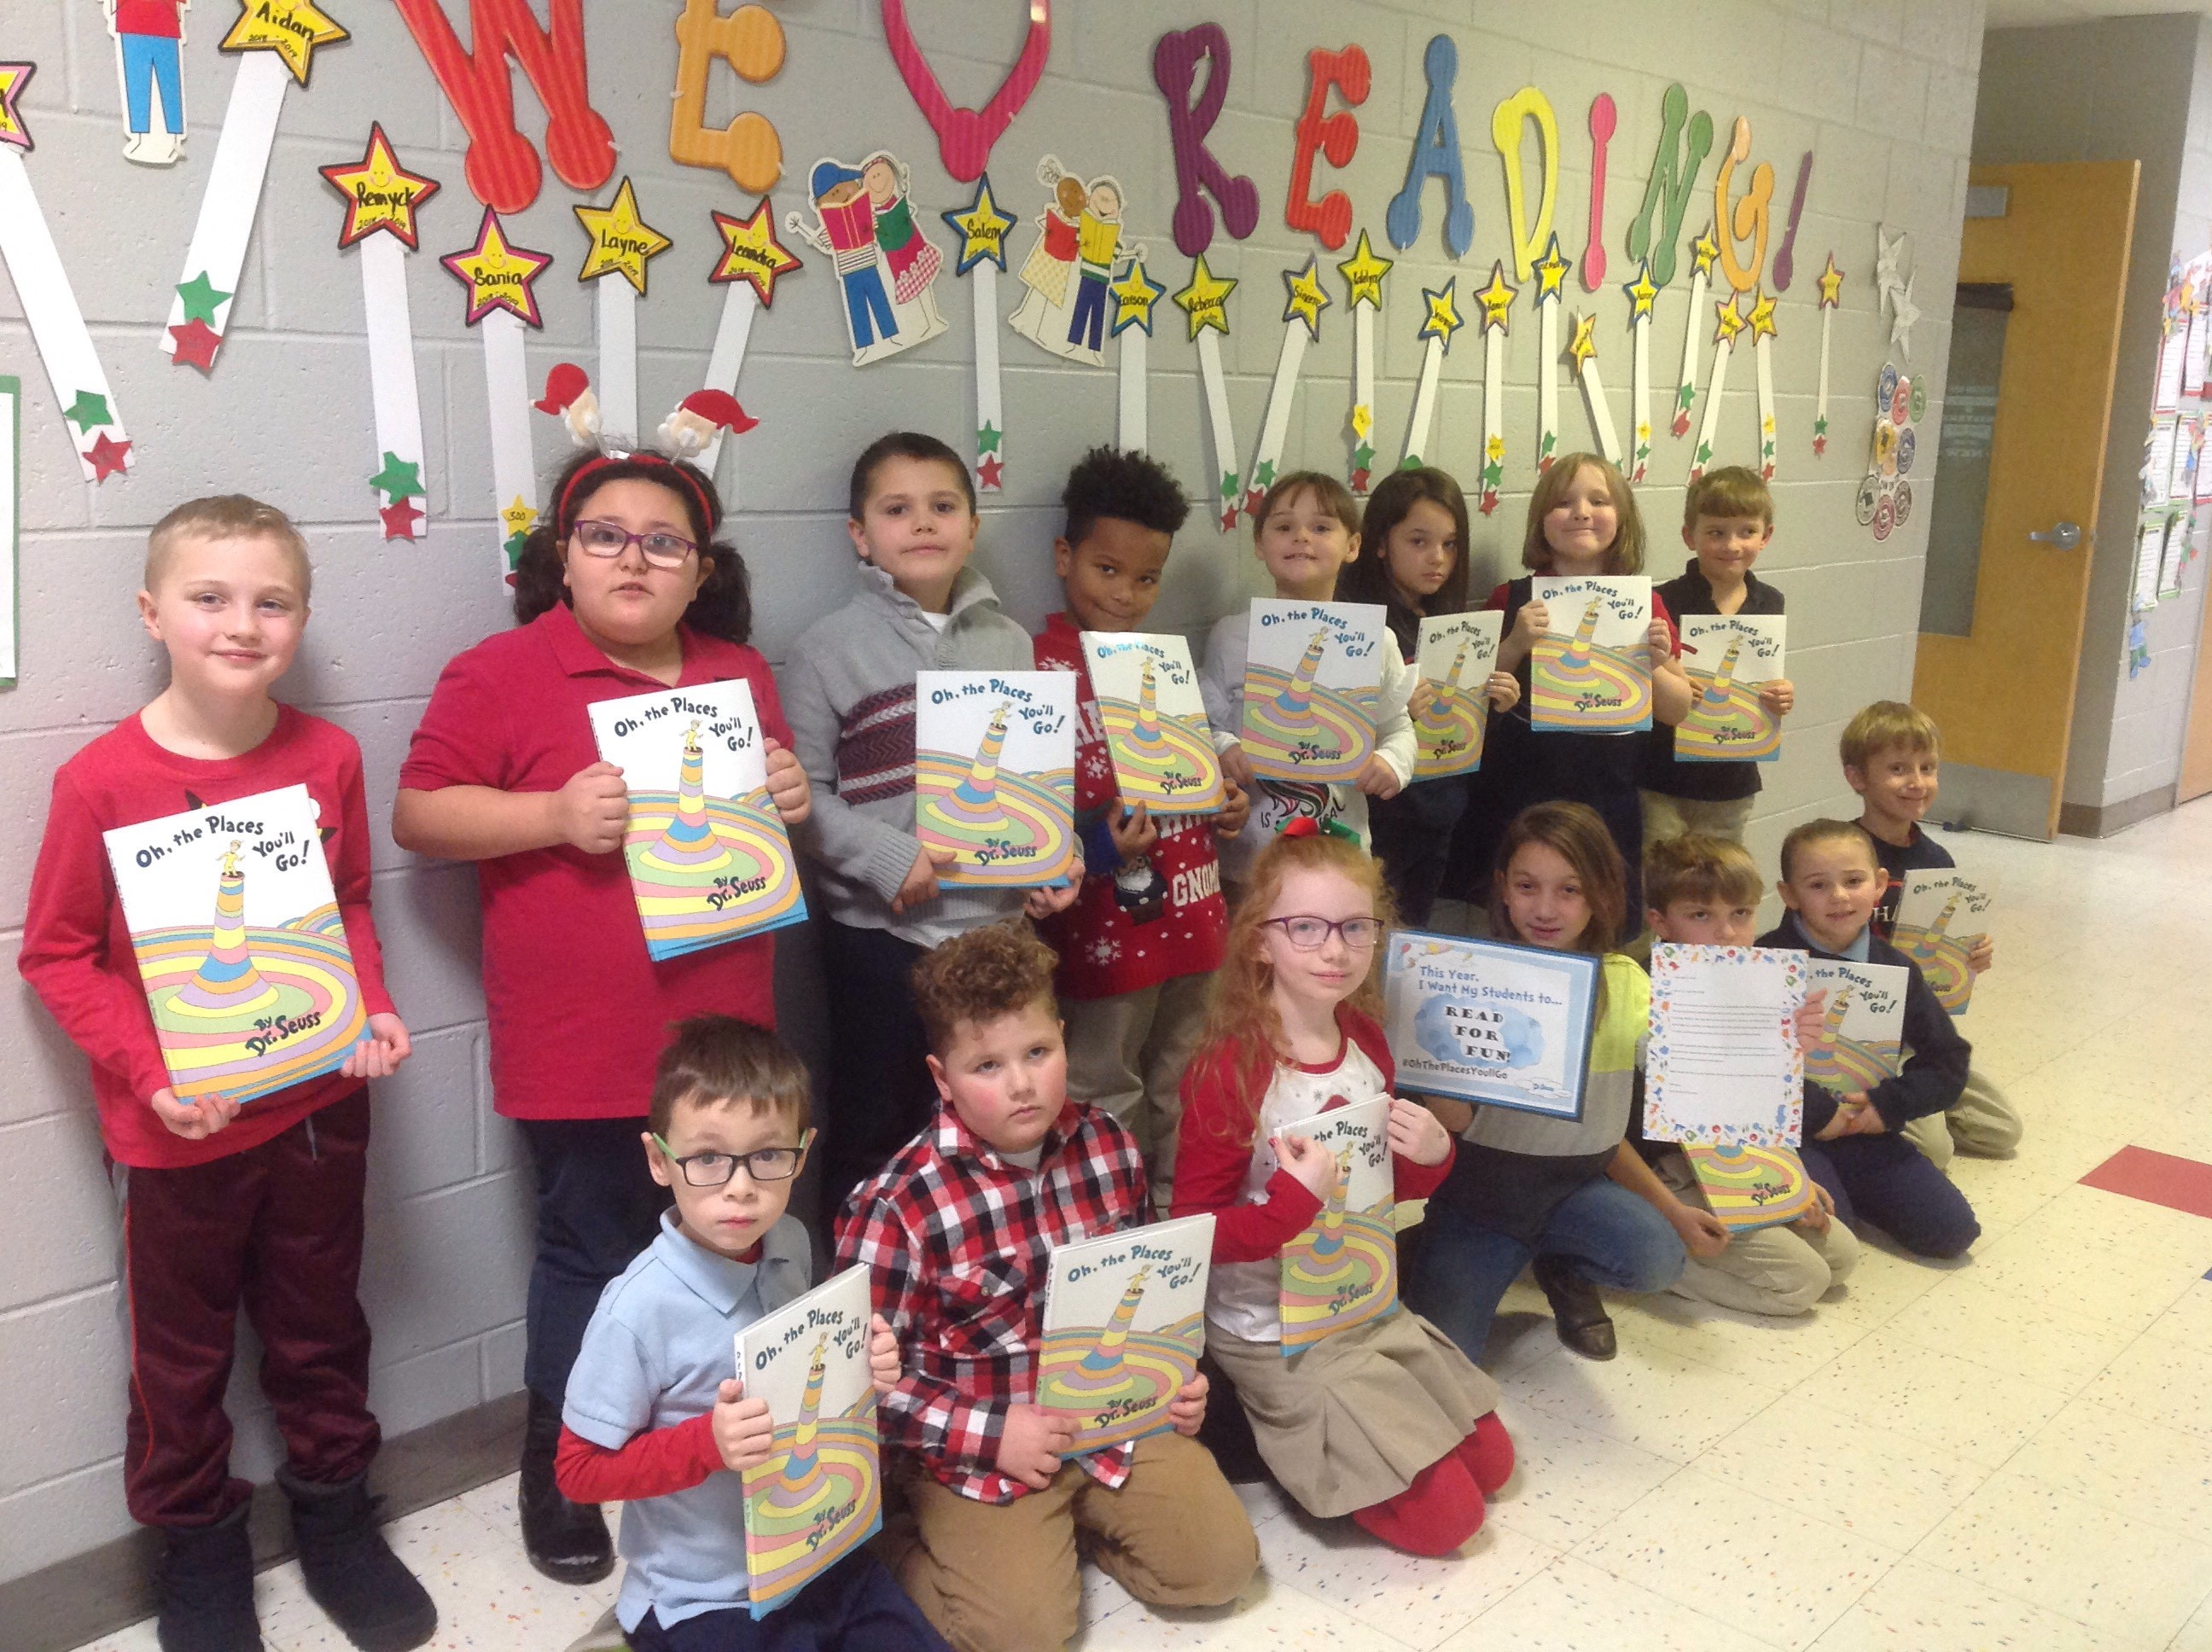 Mrs. Pope's Class Wins Award